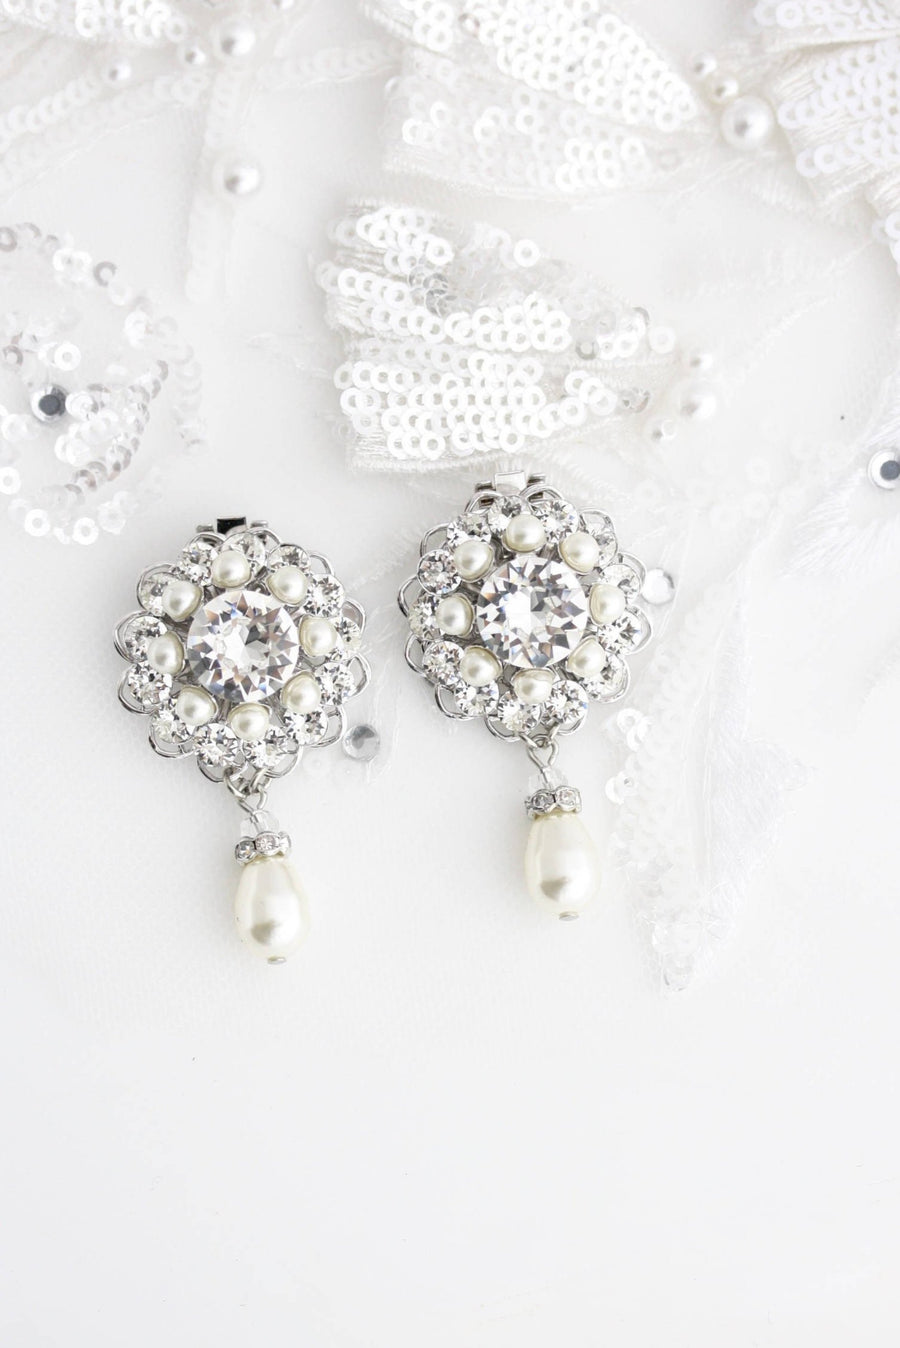 ELLA BRIDAL WEDDING SHOE CLIPS - Lulu Splendor